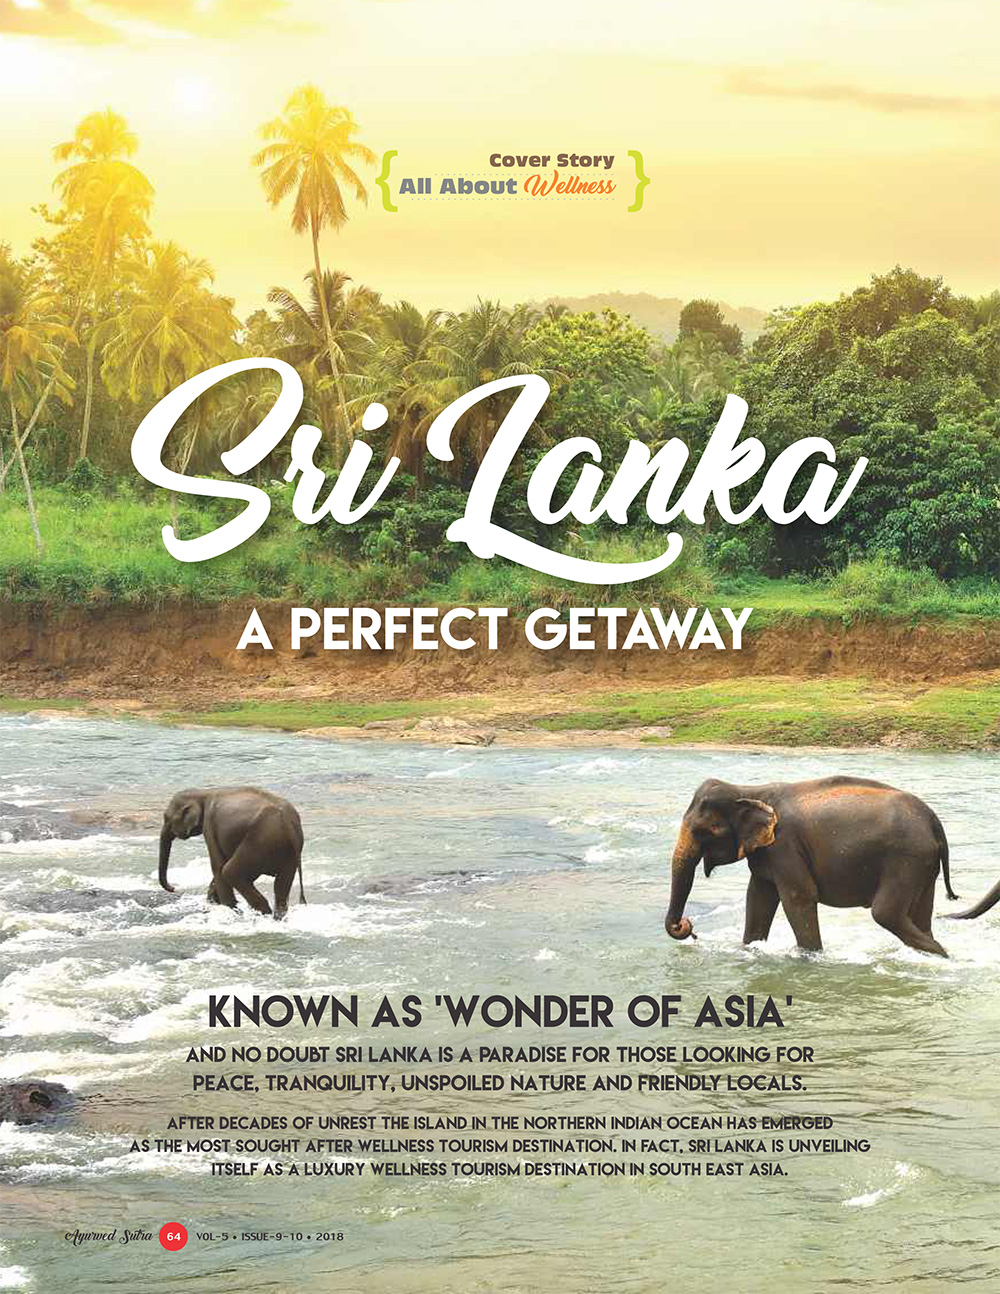 Ayurvedsutra Vol 05 issue 09 10 66 - Sri Lanka: A Perfect Getaway